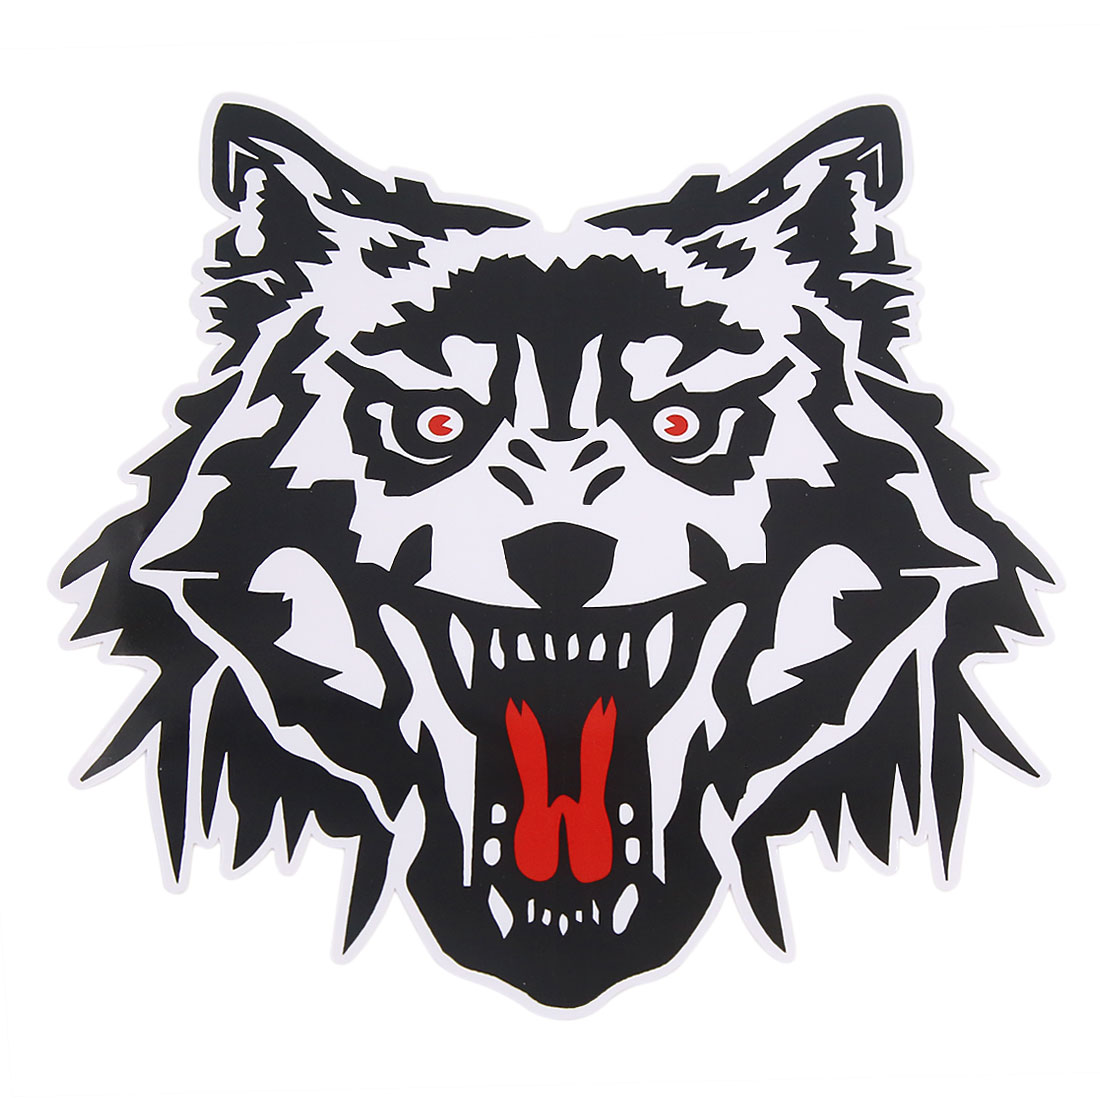 Black white wolf decal printed styling adhesive car vehicle sticker